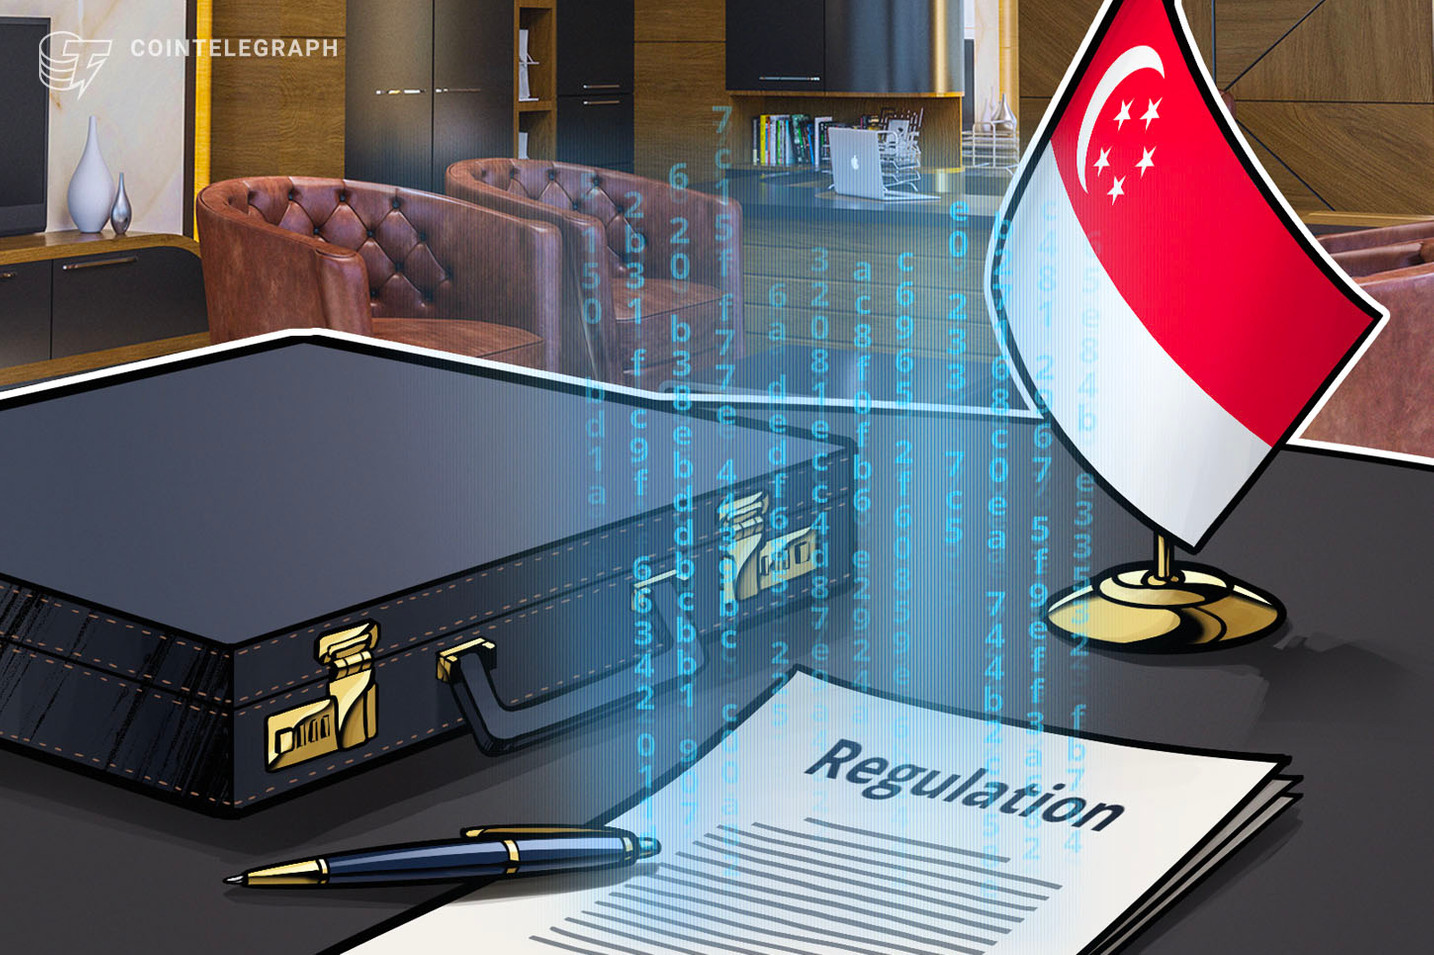 Singapore Regulator Recognizes Potential of Blockchain for Cross-Border Payments